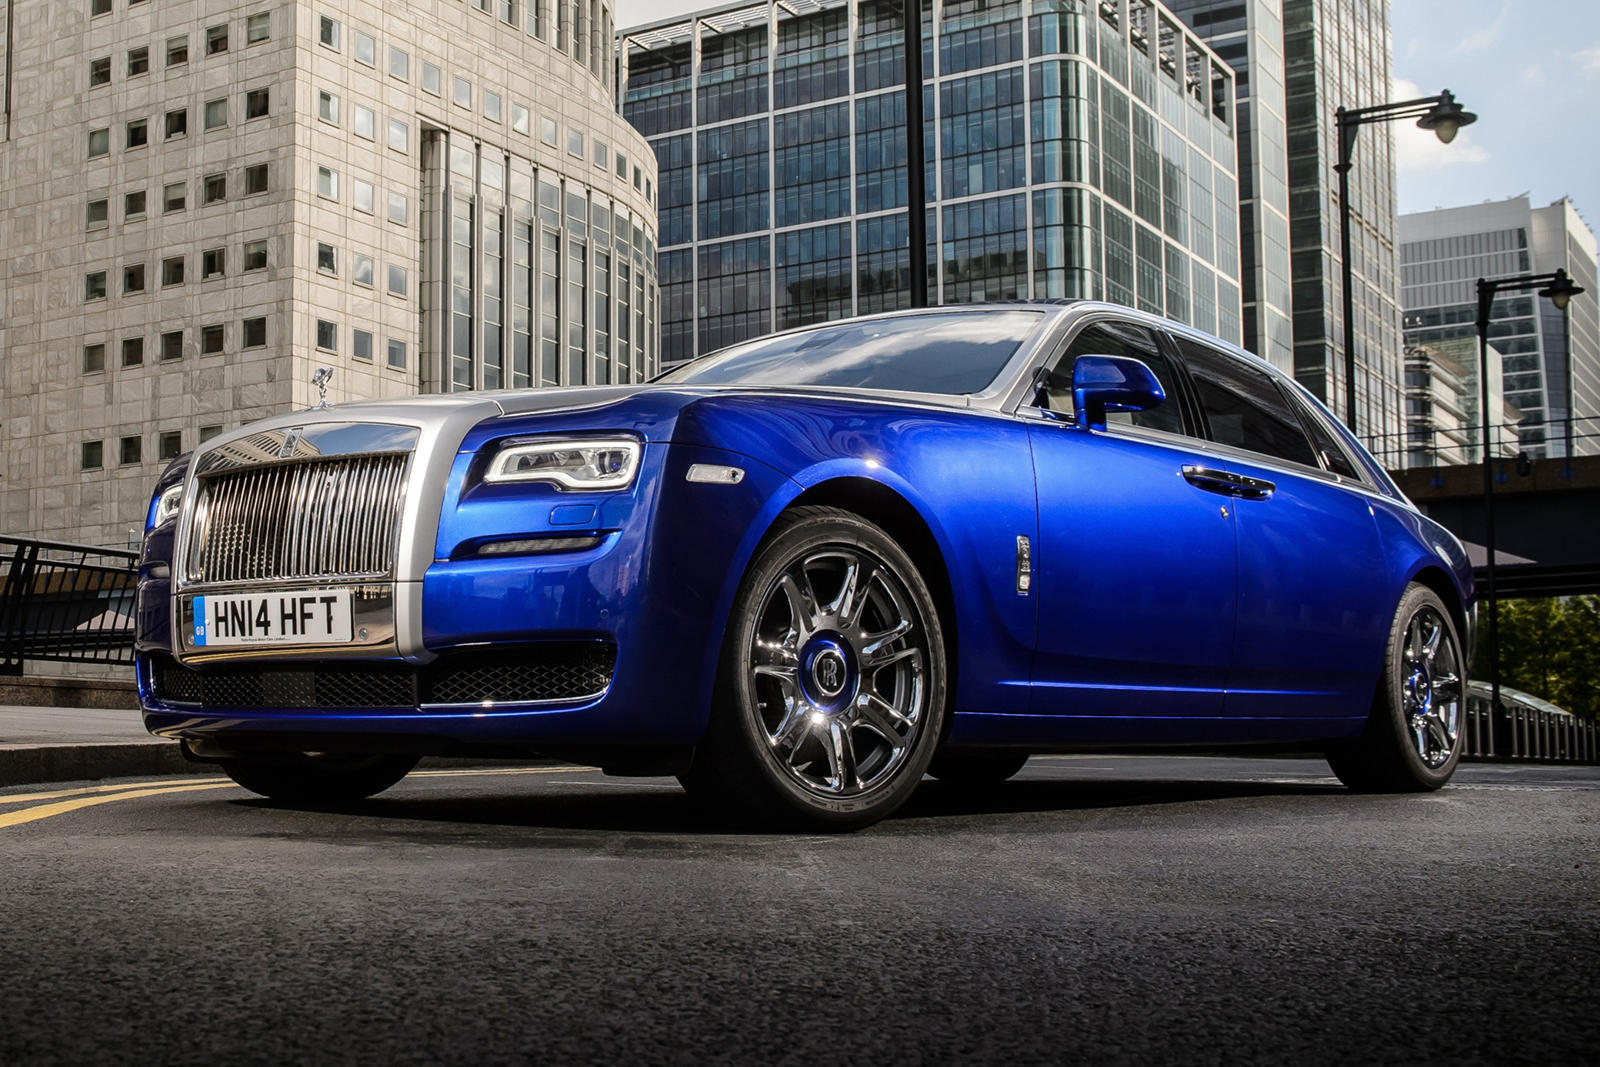 Here S How The Ghost Became A Game Changer For Rolls Royce Carbuzz